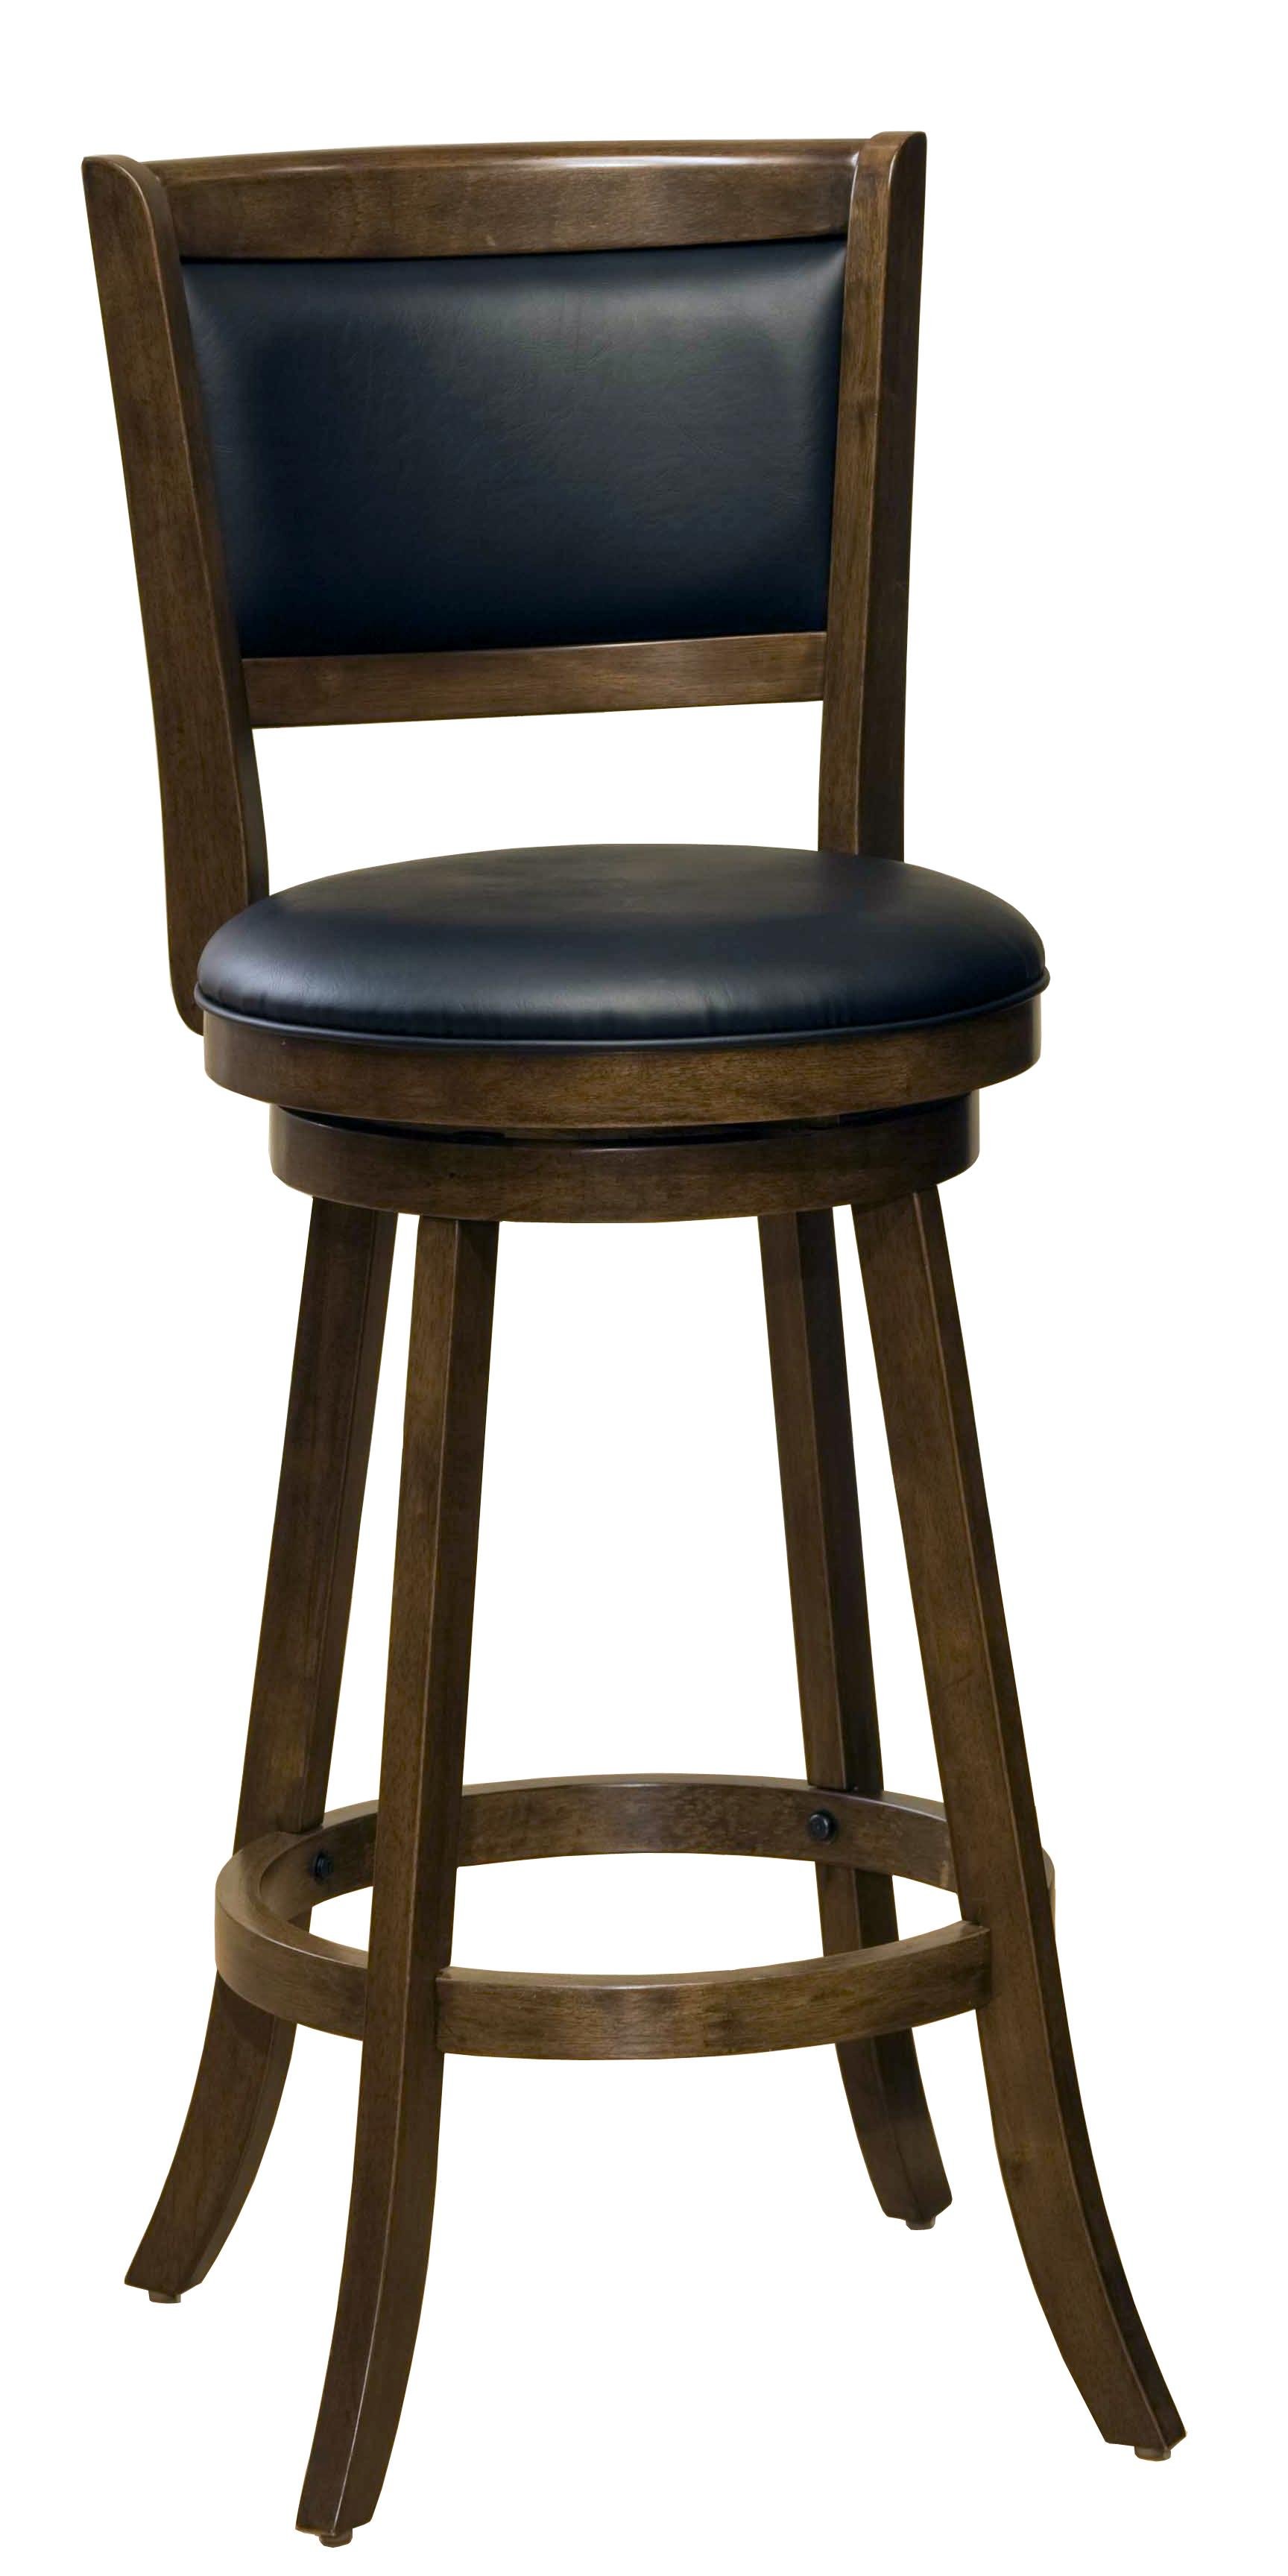 Wooden Swivel Bar Stools ~ Hillsdale wood stools quot counter height dennery